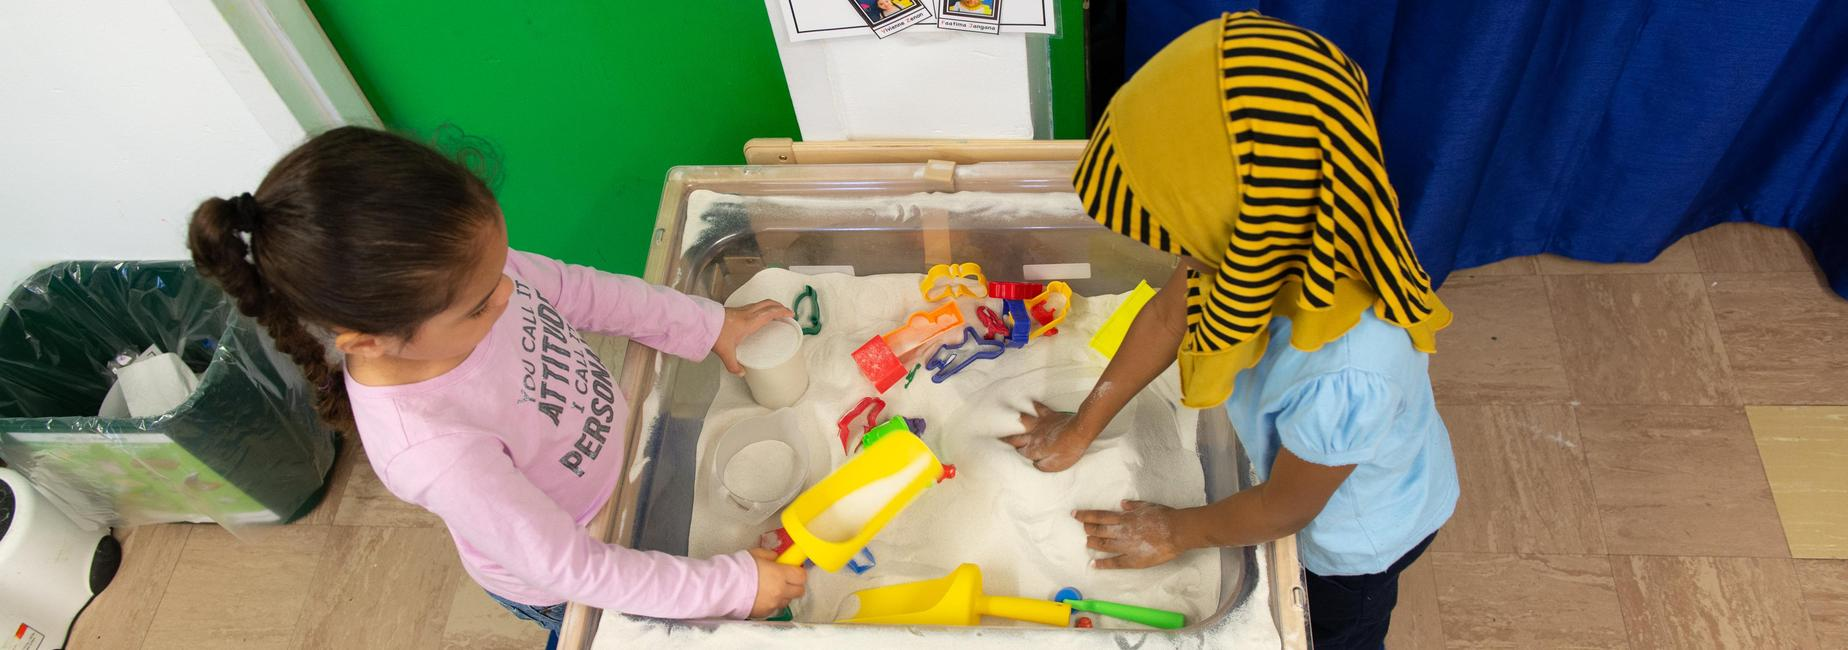 Two pre-k students playing at a sand table.